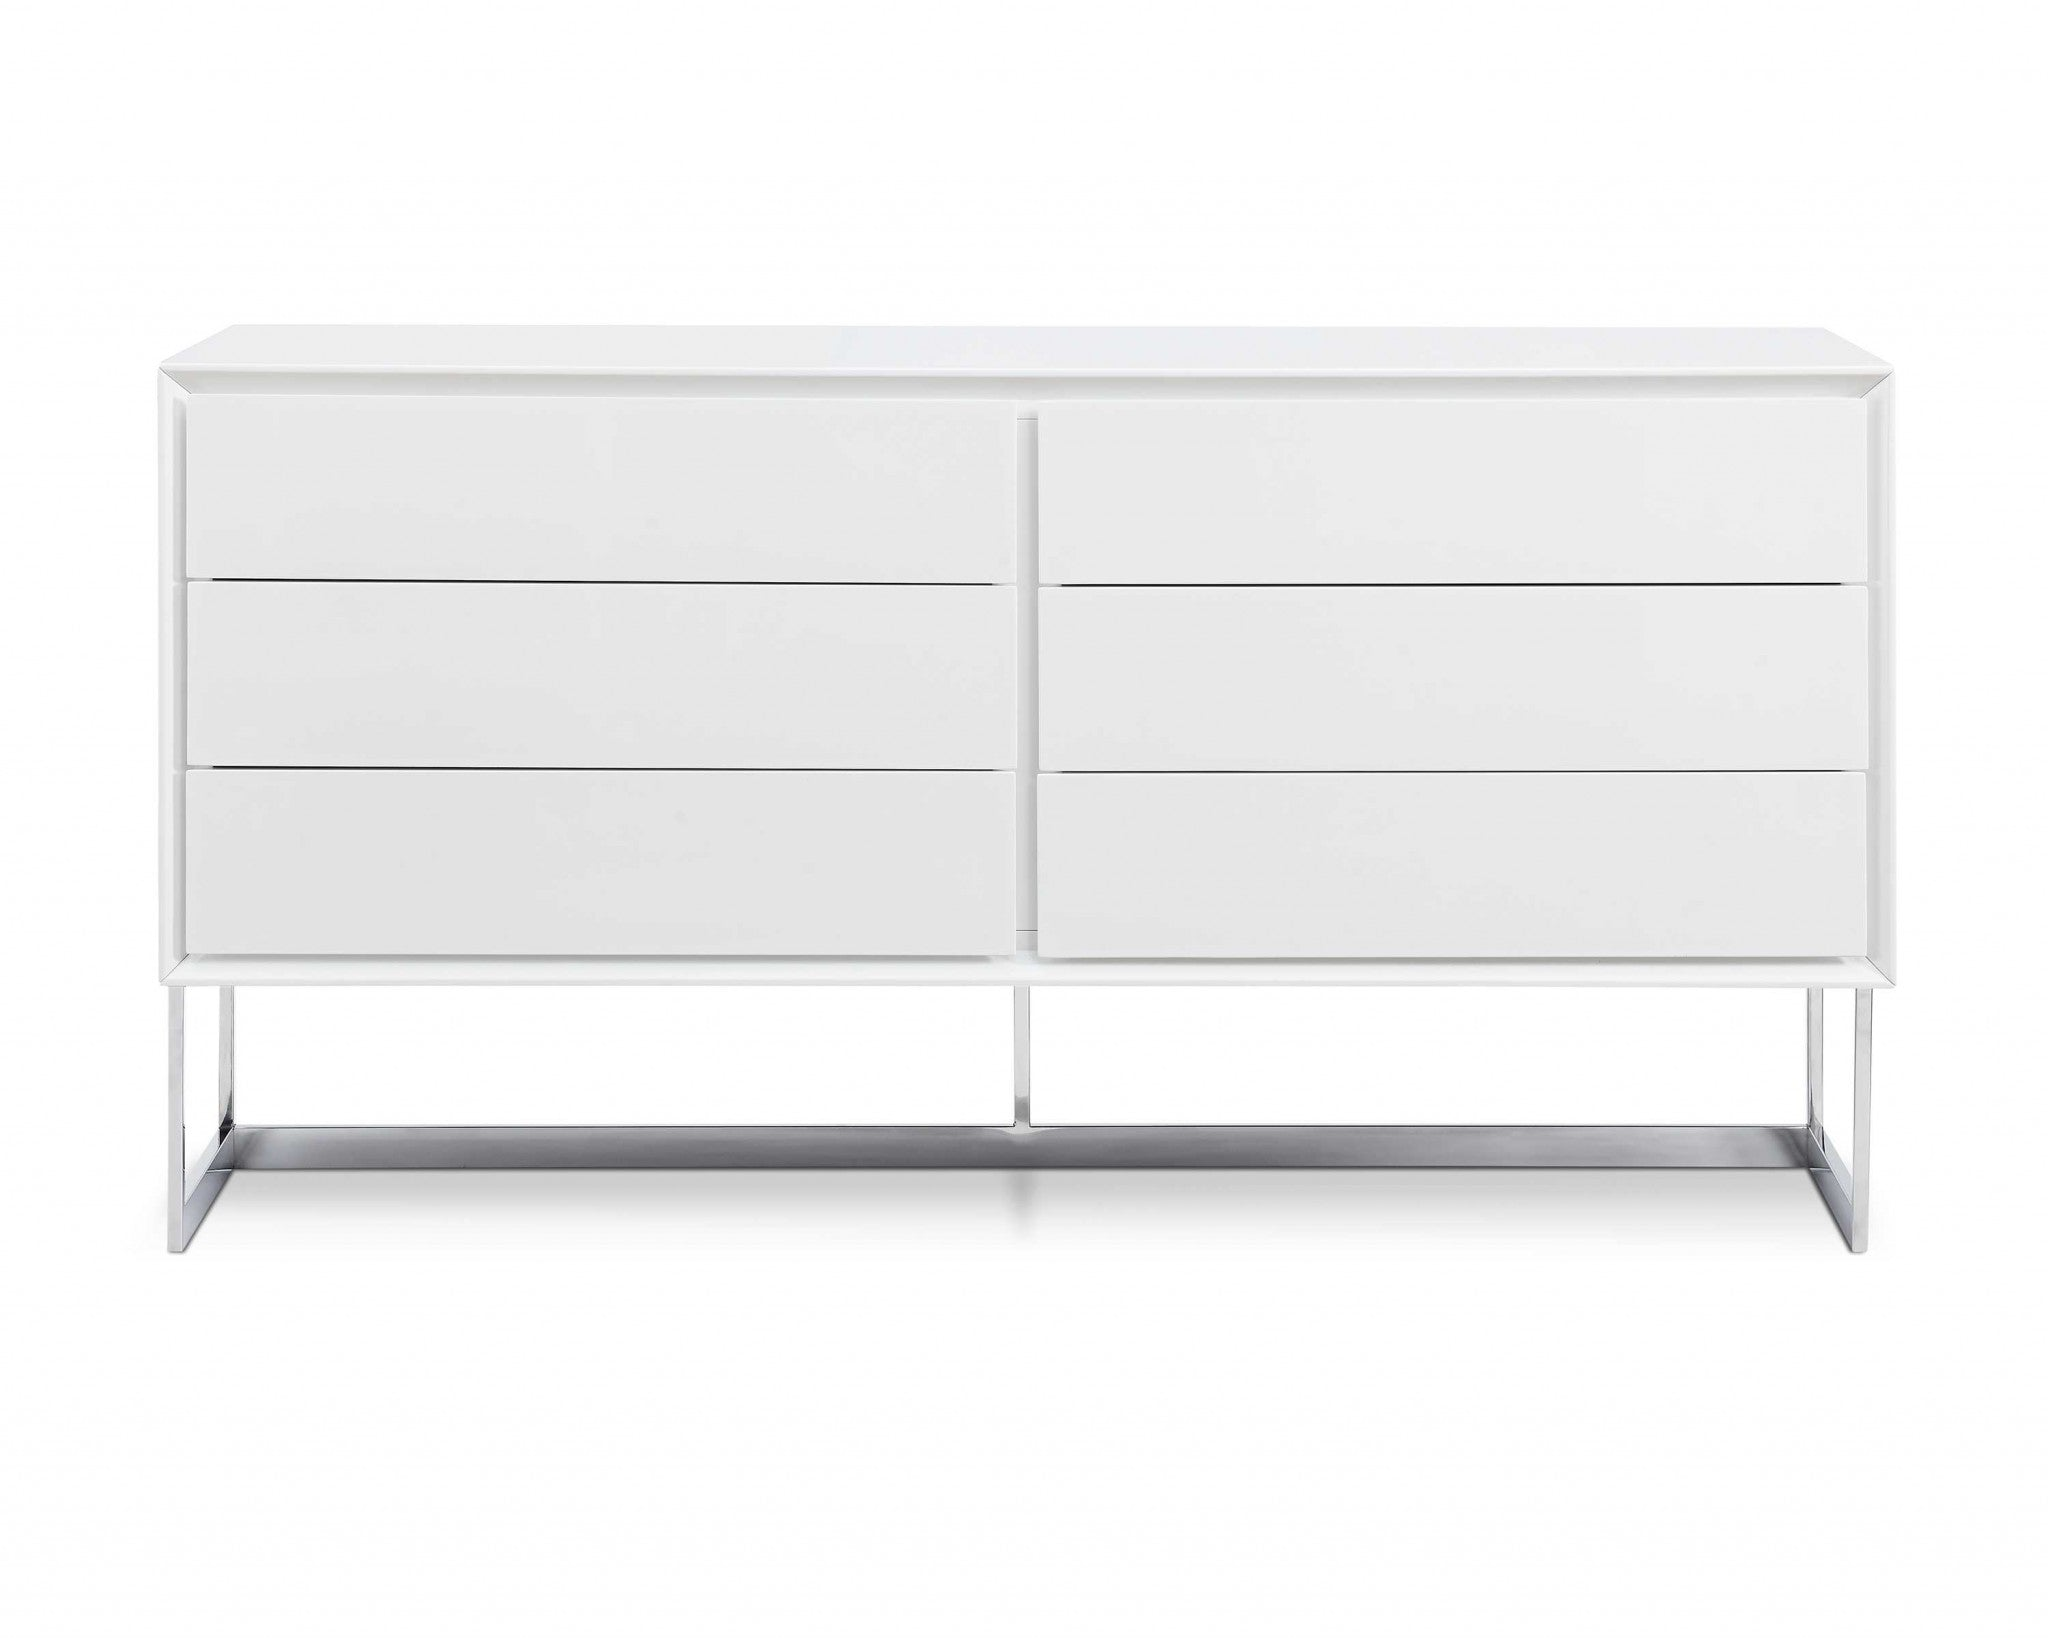 "60"" X 20"" X 32"" White Stainless Steel Buffet"